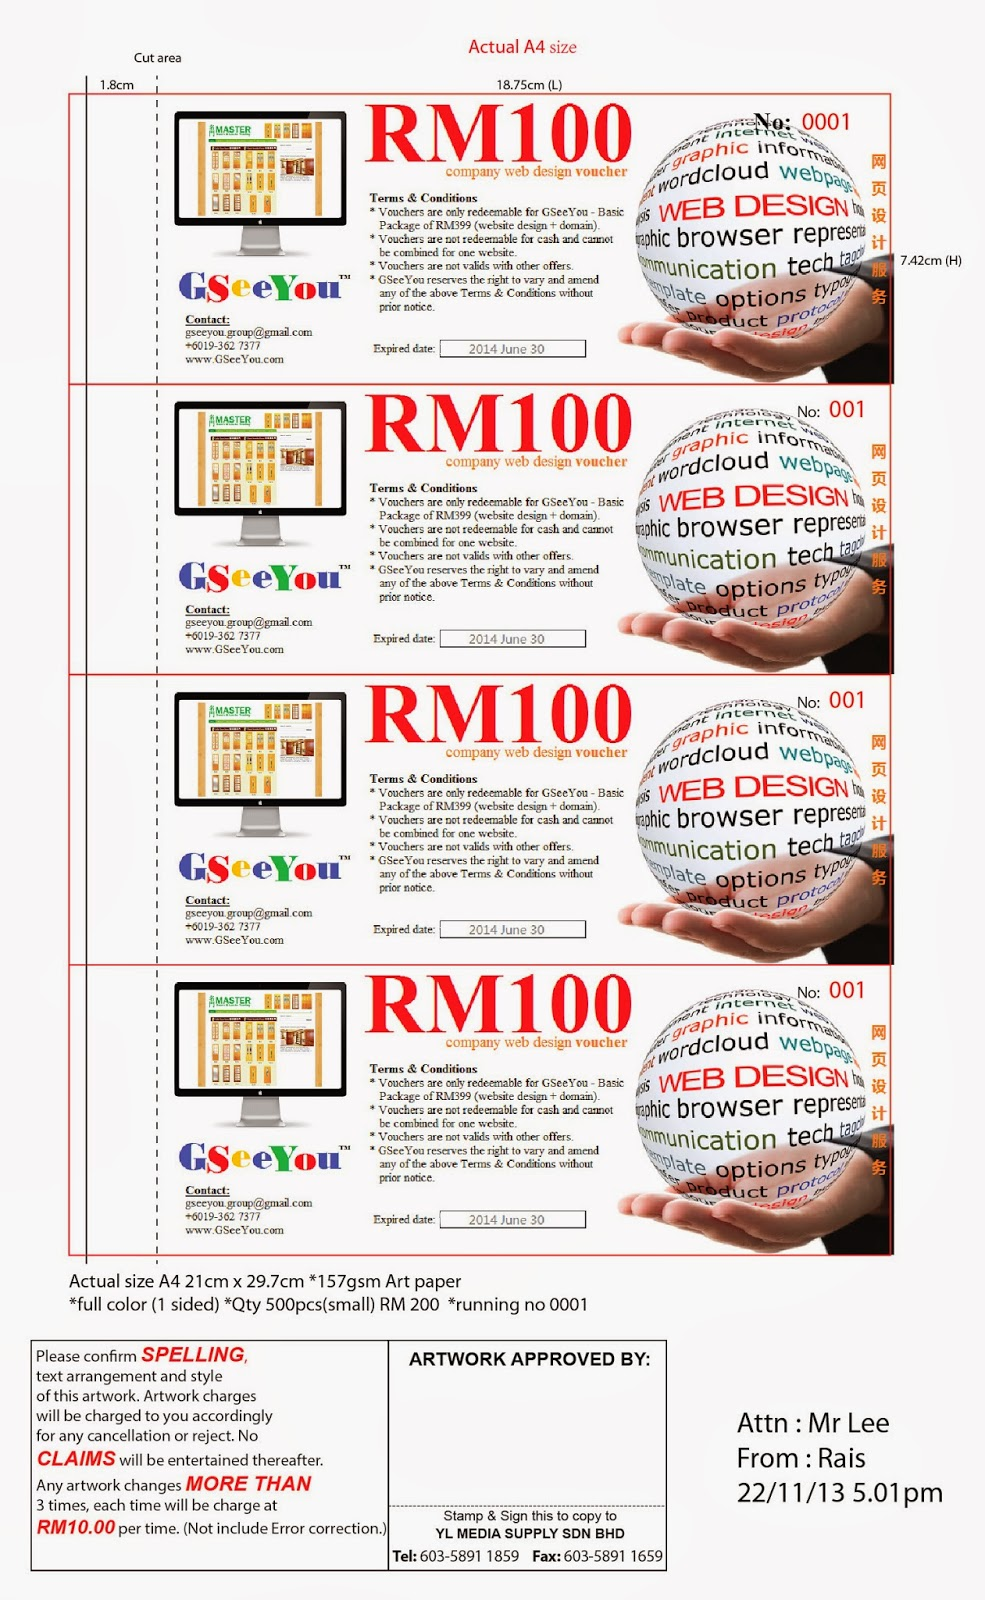 color printing malaysia :  Voucher Is Ready For Printing And Will Be Distributed Through Our 15 Partners Who Are Printing And Signboard Companies Around Malaysia